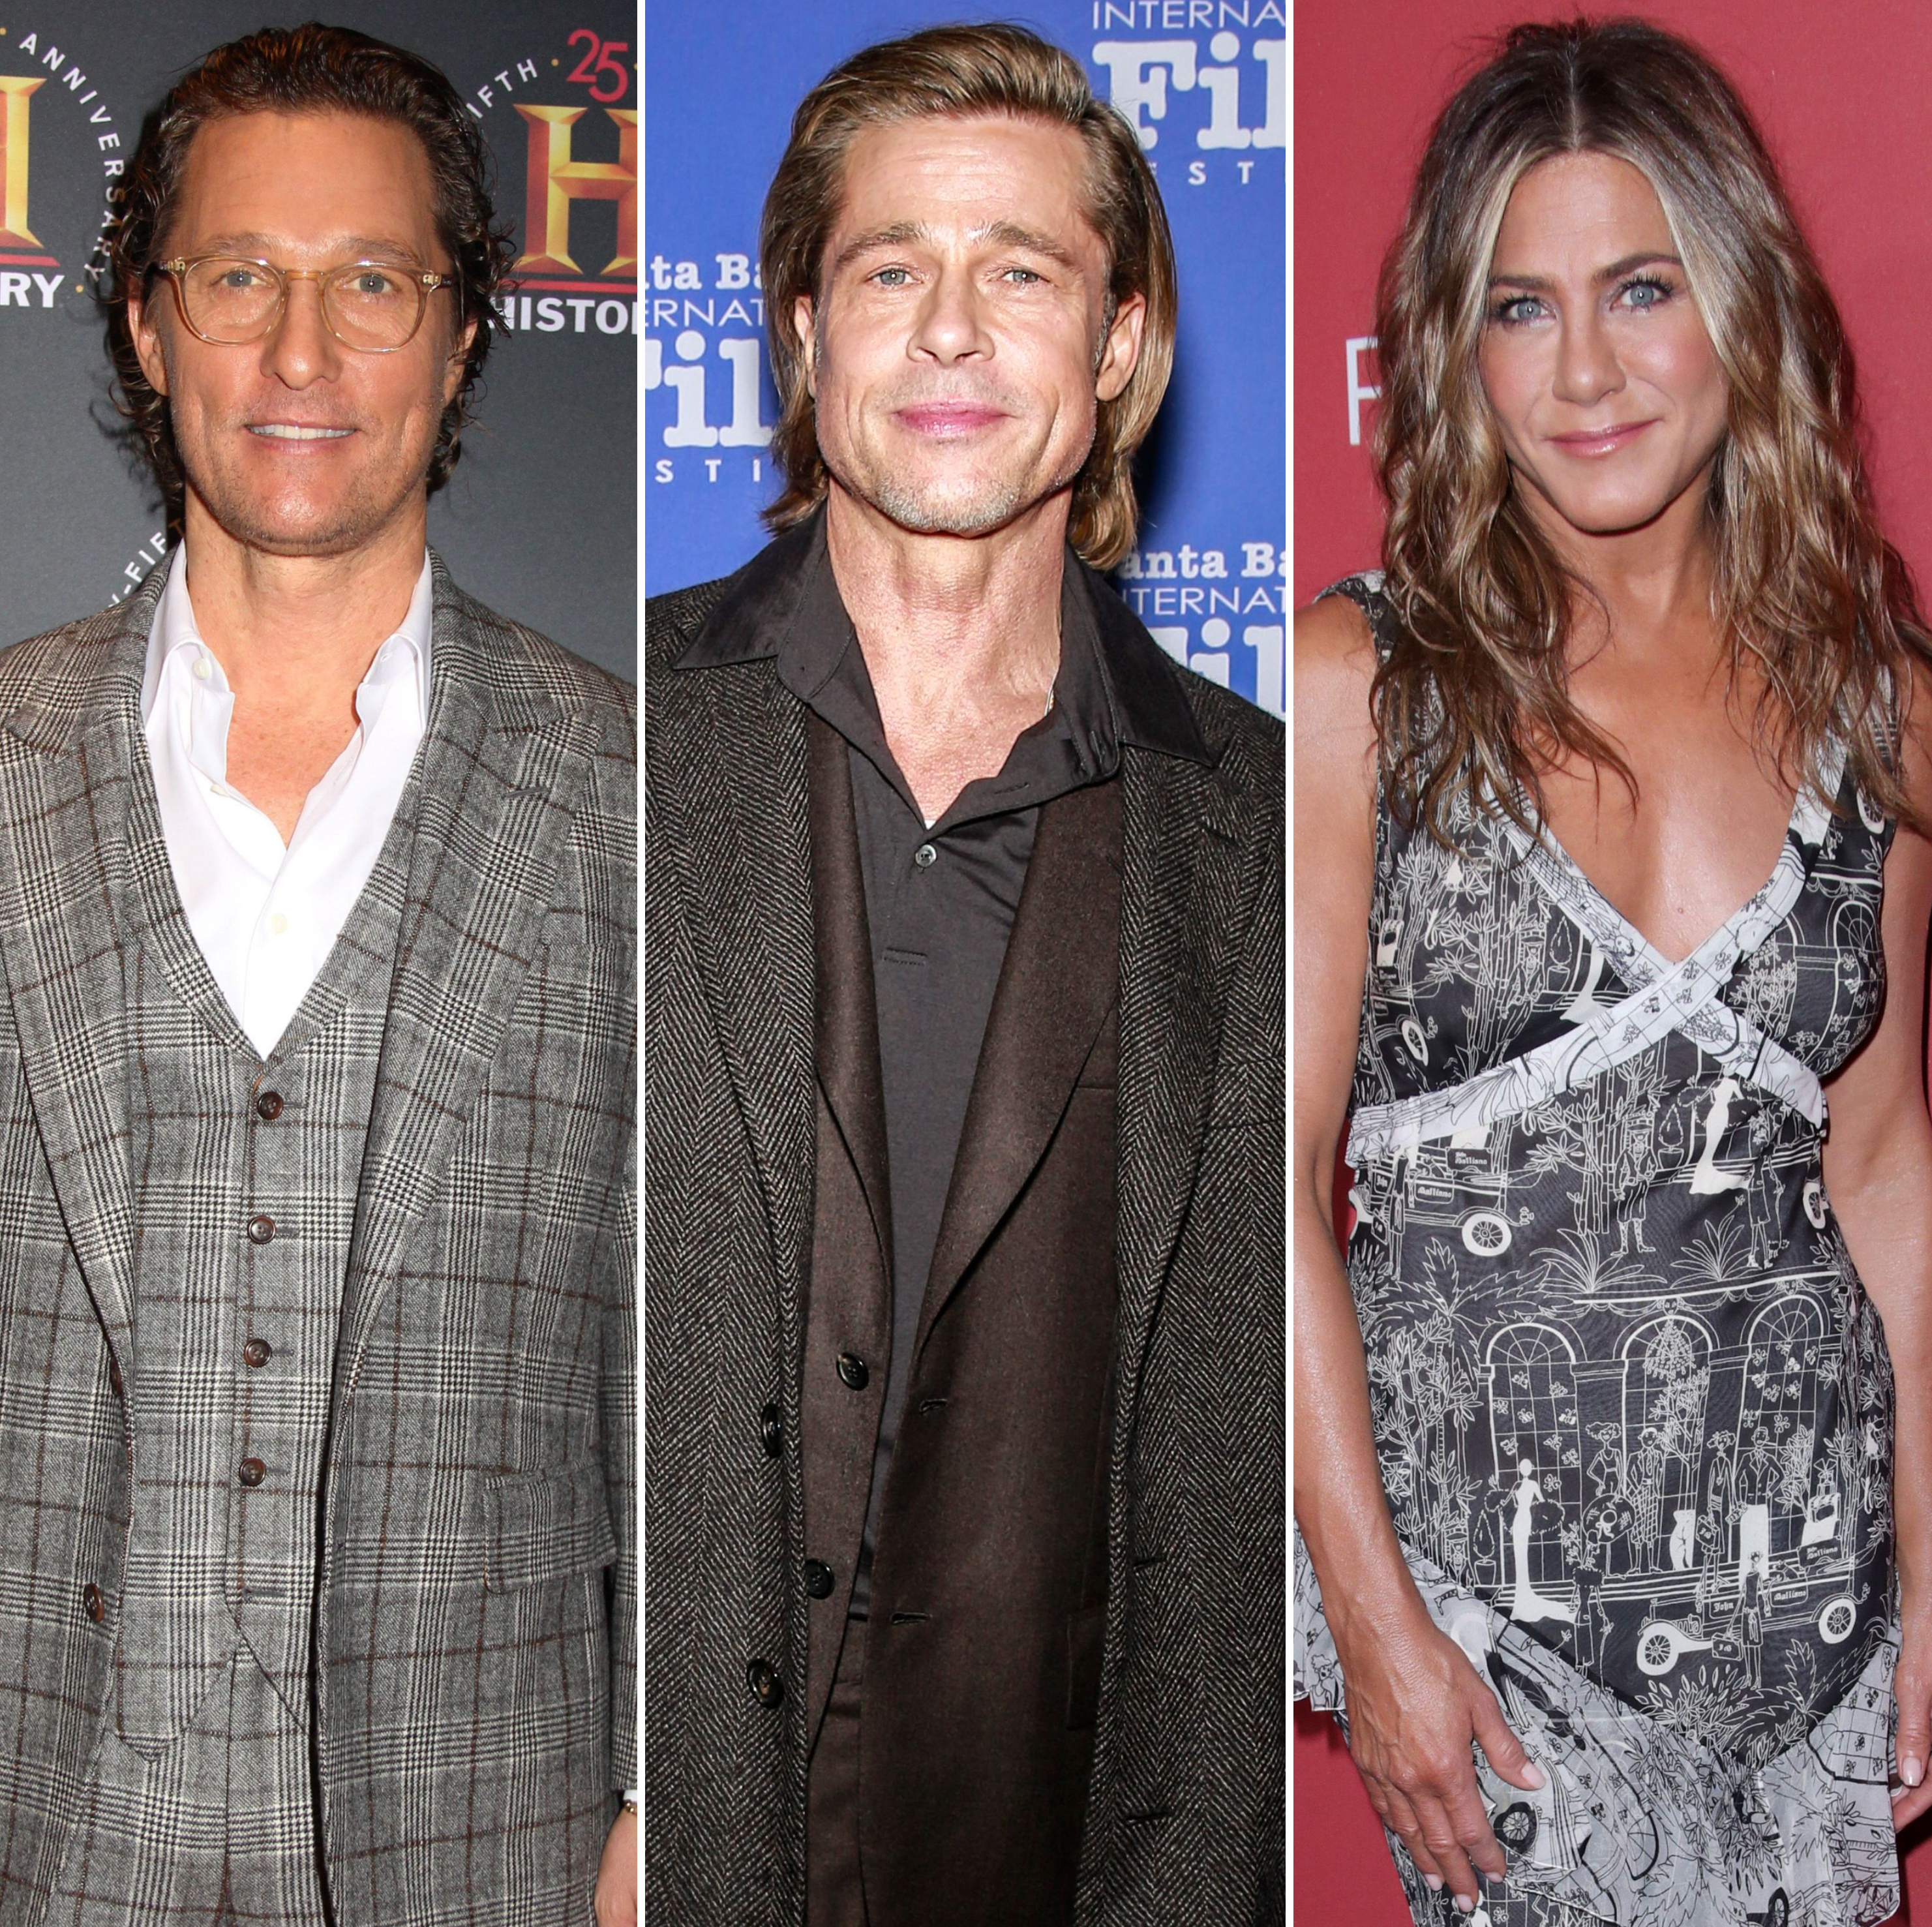 Ow, Ow! Matthew McConaughey Reacts to Brad Pitt and Jen Aniston's 'Sexual Tension' During Table Read